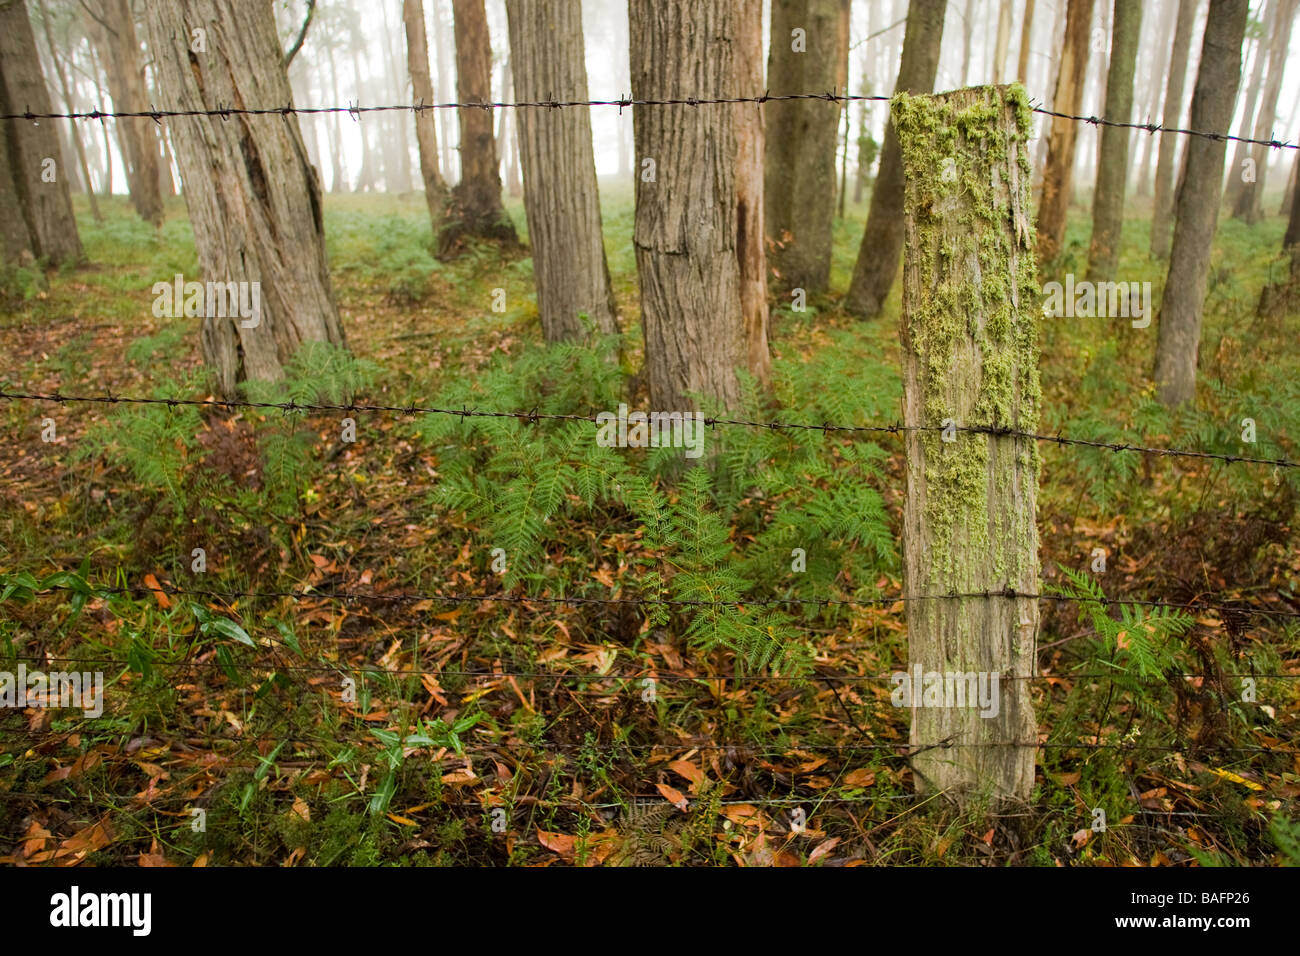 a mossy fence in a misty forest - Stock Image